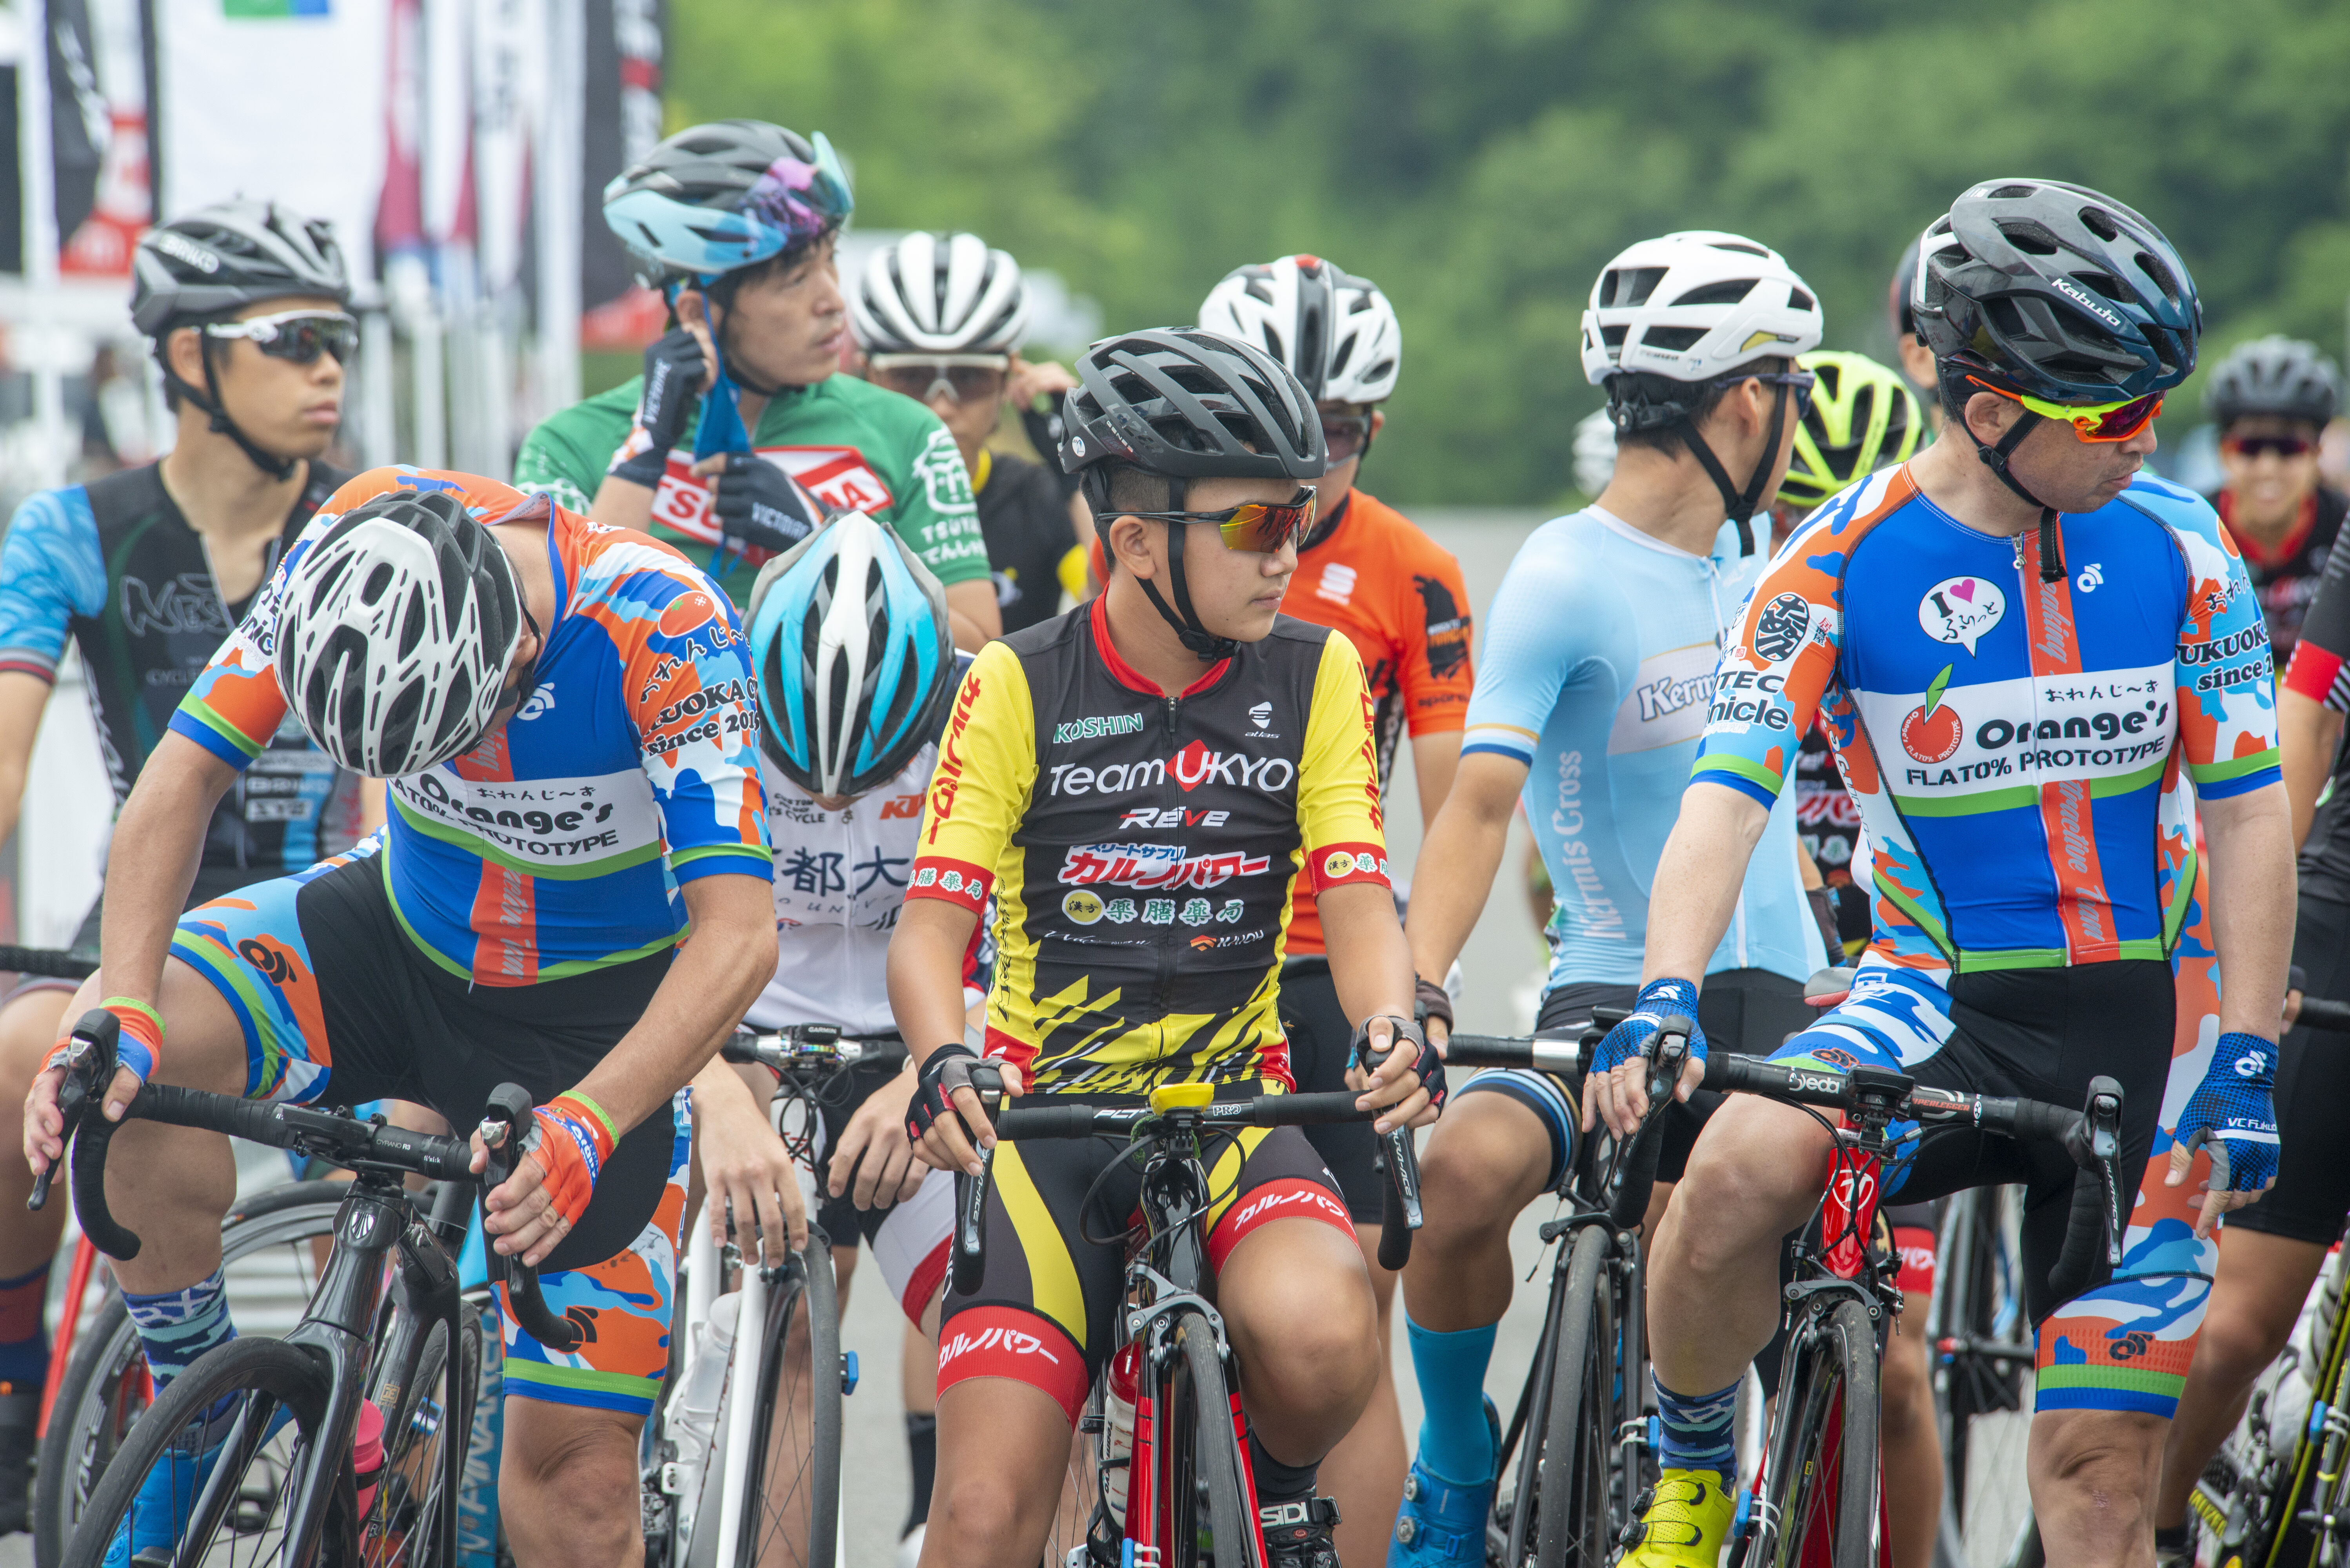 JCL Hobby Road Race